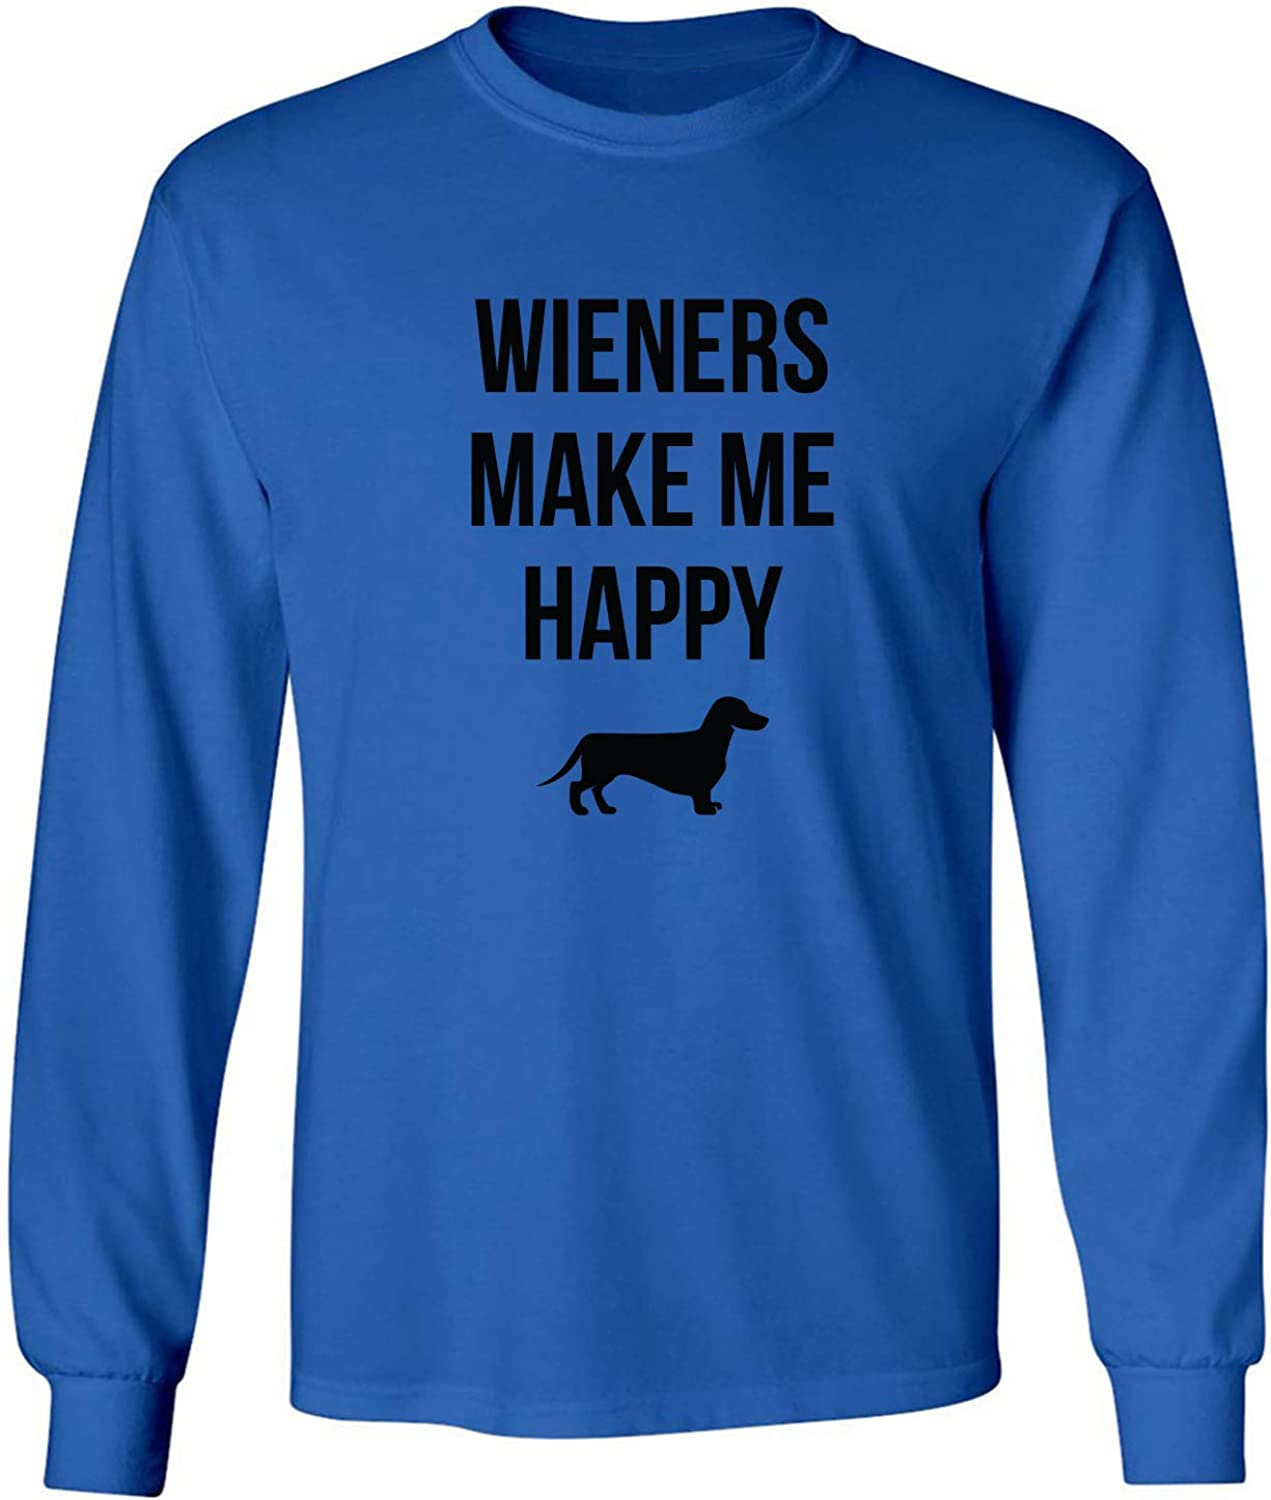 Wieners Make Me Happy Adult Long Sleeve T-Shirt in Royal - XXXXX-Large